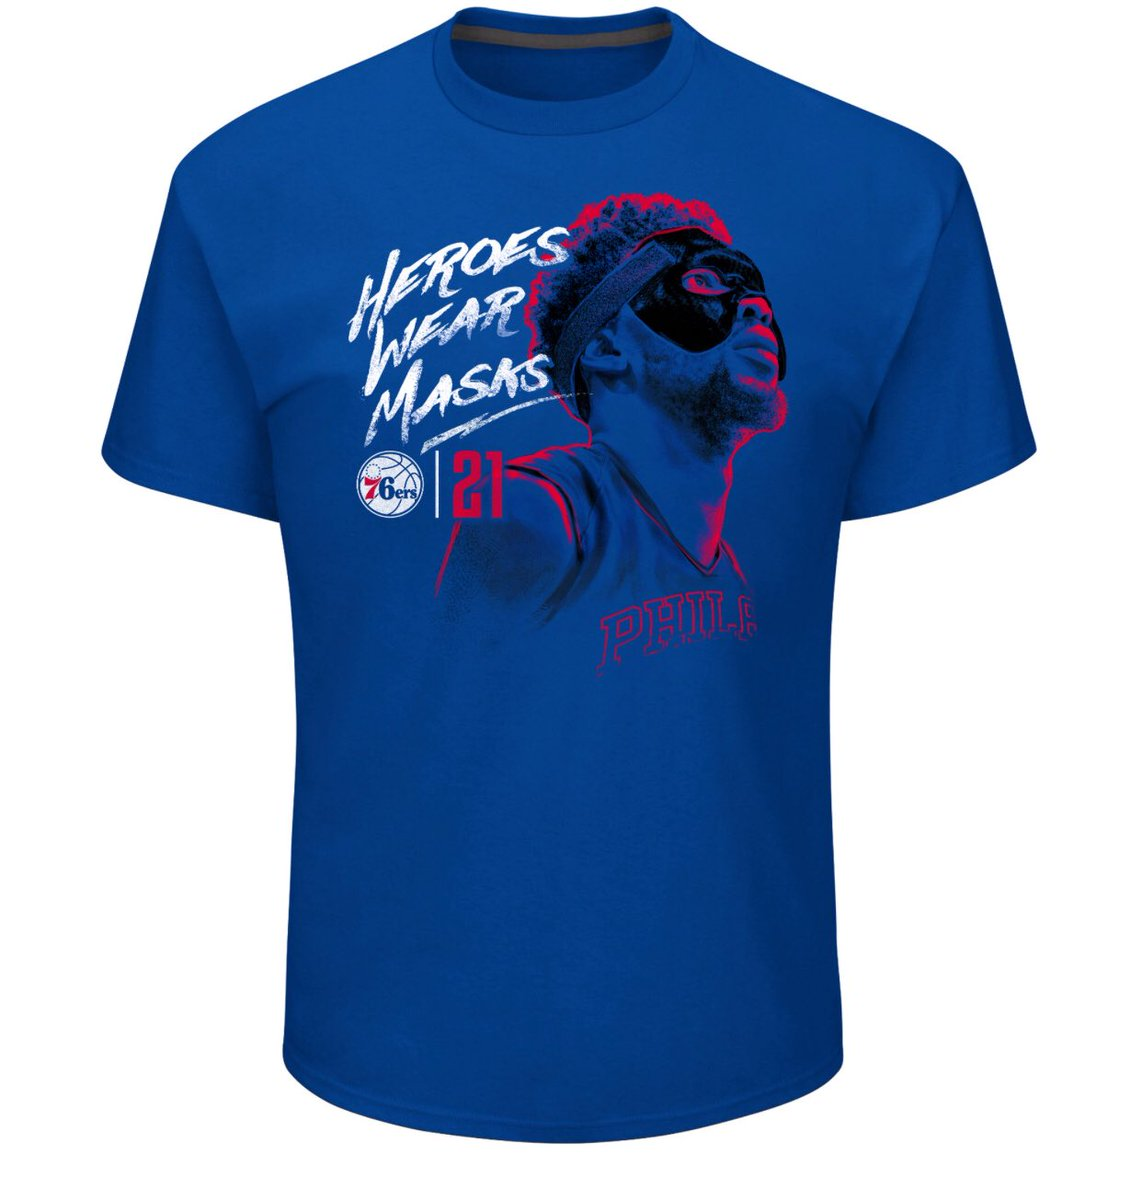 Fanatics just dropped a new Masked Embiid shirt 😂 https://t.co/vNOnD2atpp